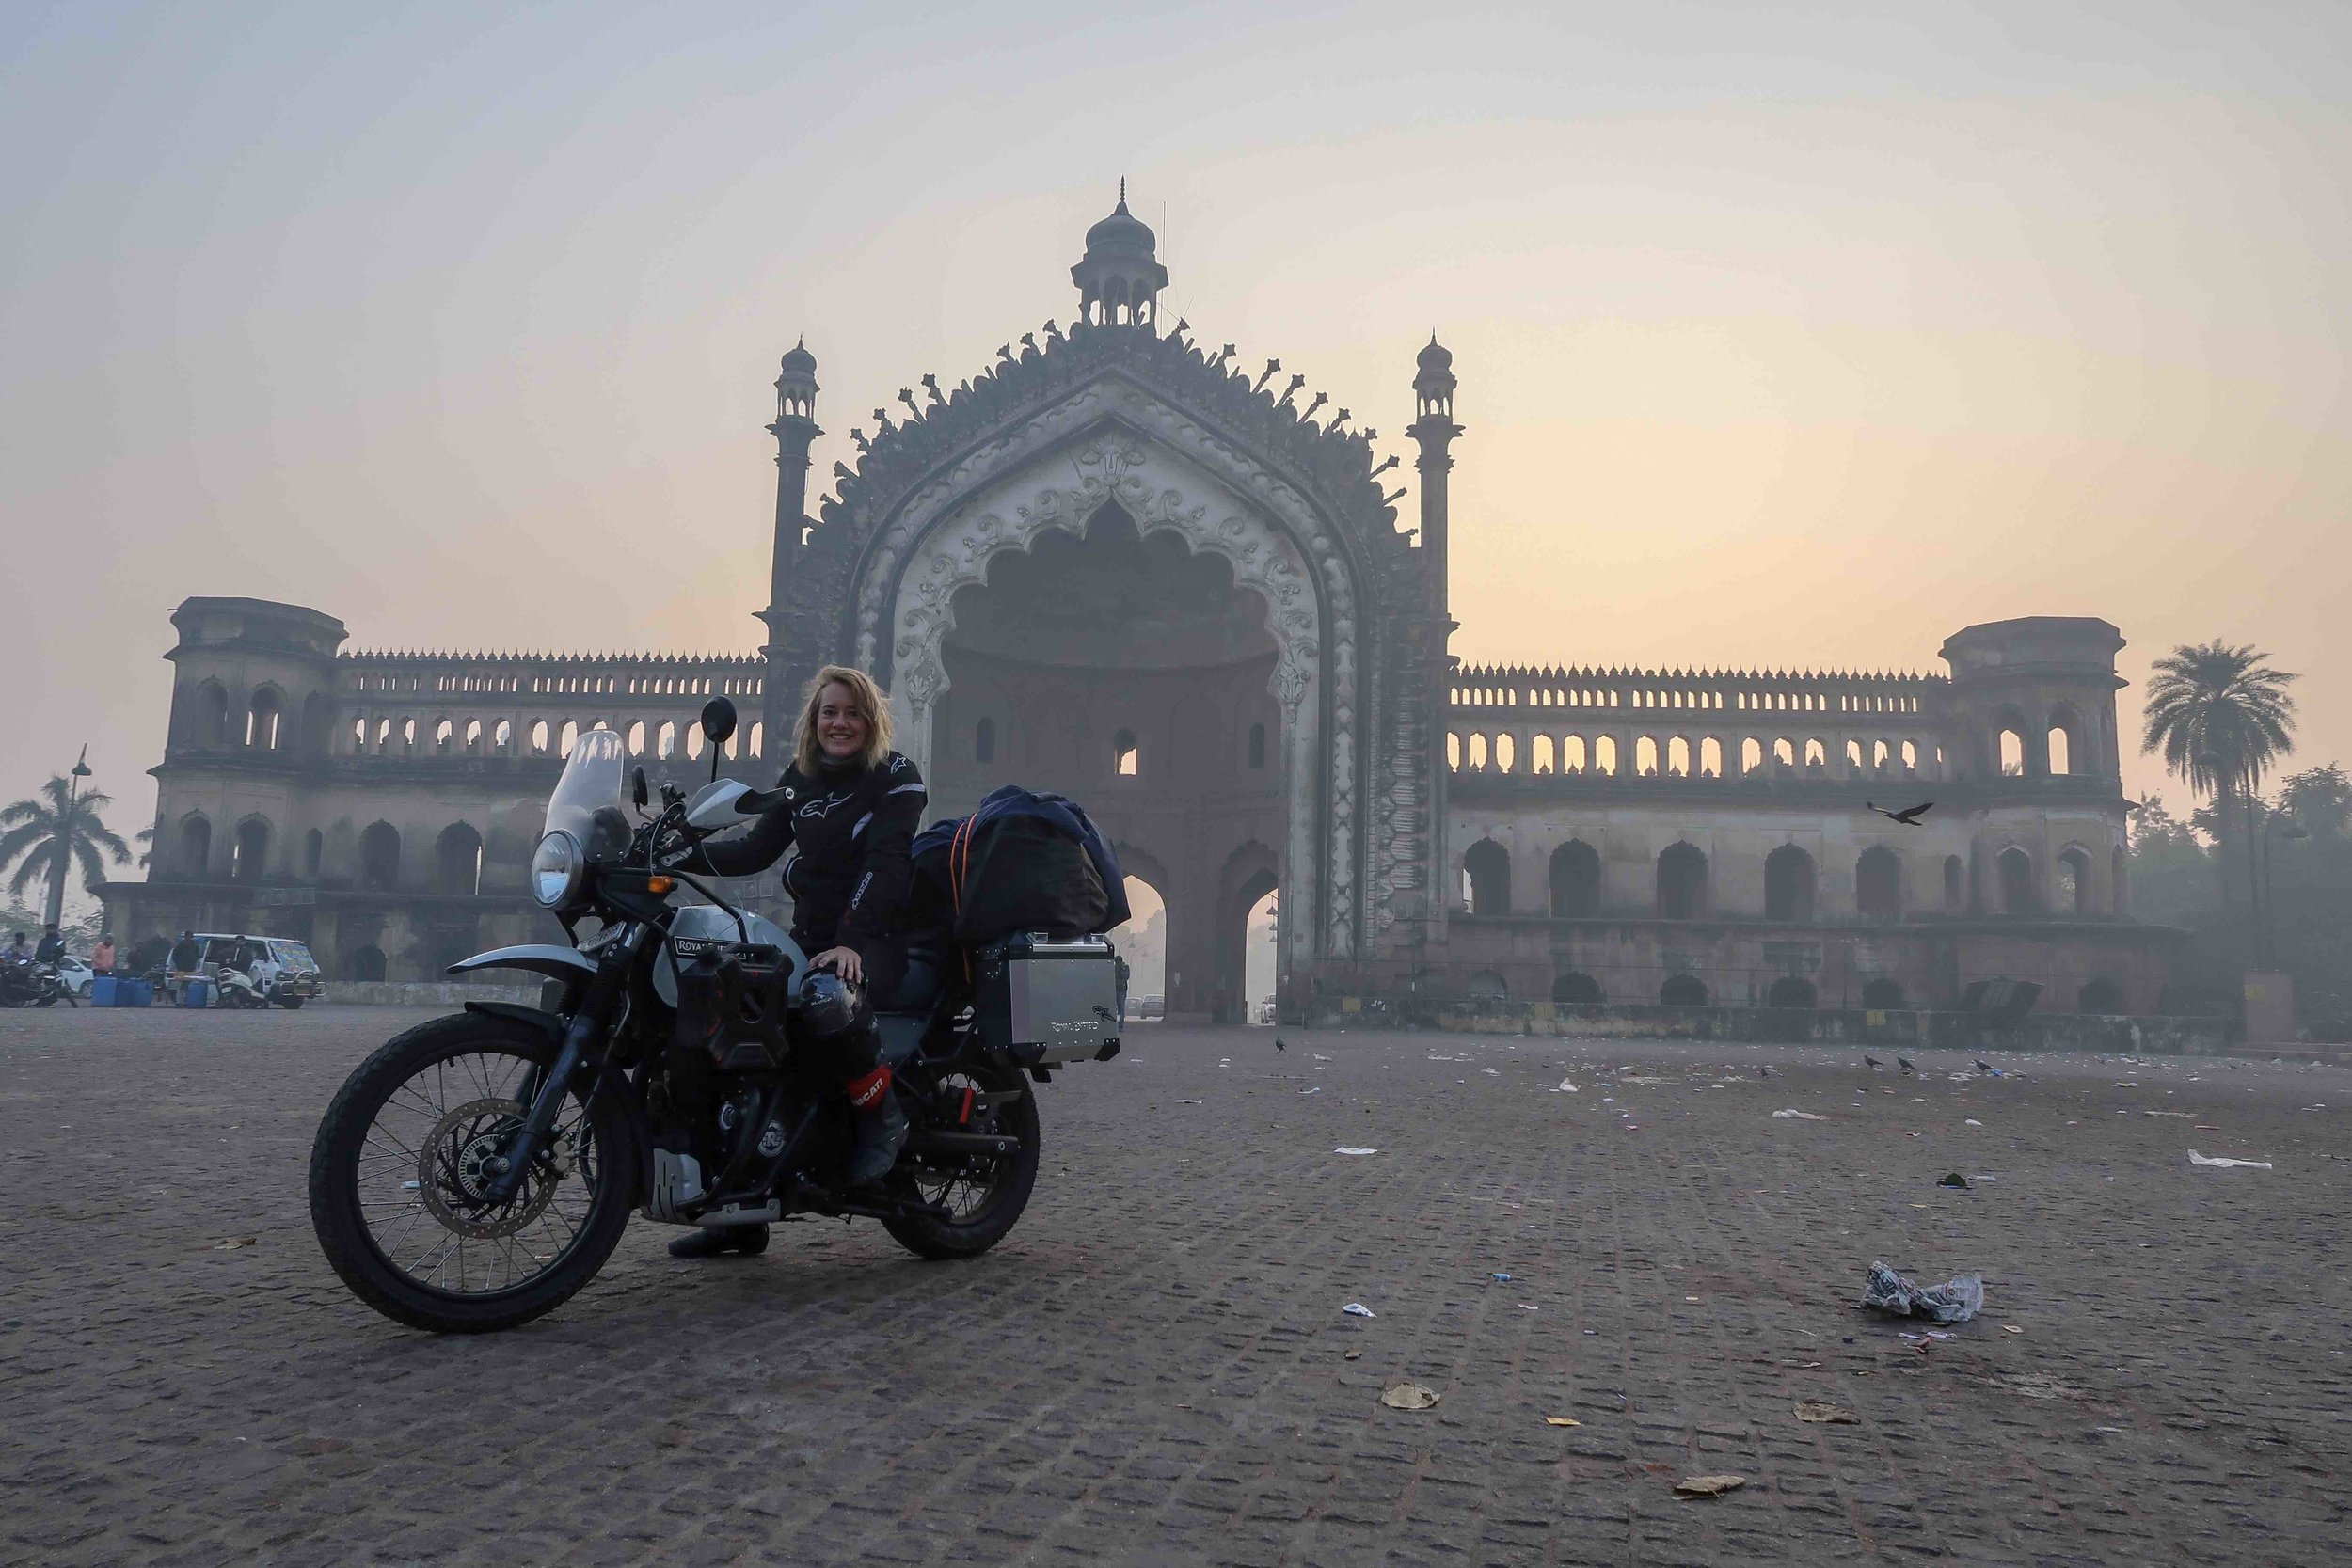 Sunrise at Rumi Darwaza in Lucknow.